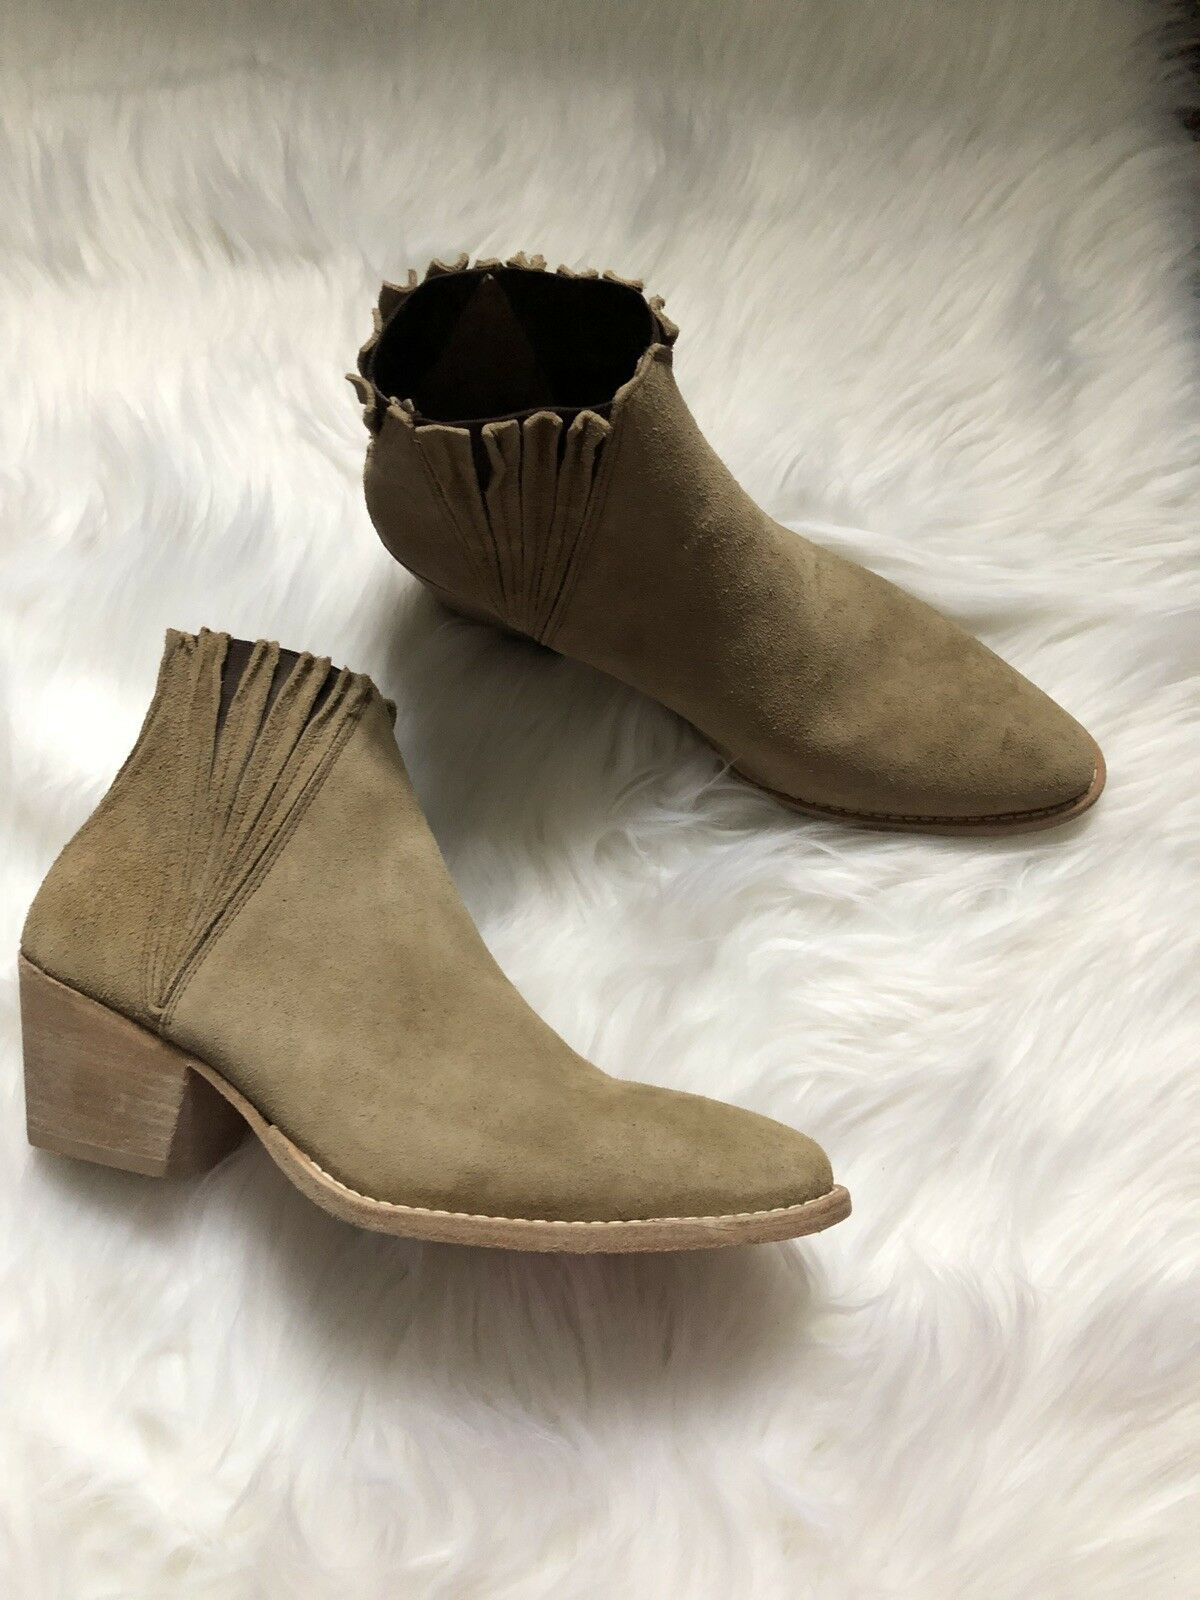 NEW FREE PEOPLE FARYLROBIN Sz 8 TRILL SUEDE ANKLE BOOT BOOTIE TAUPE TABACCO  198